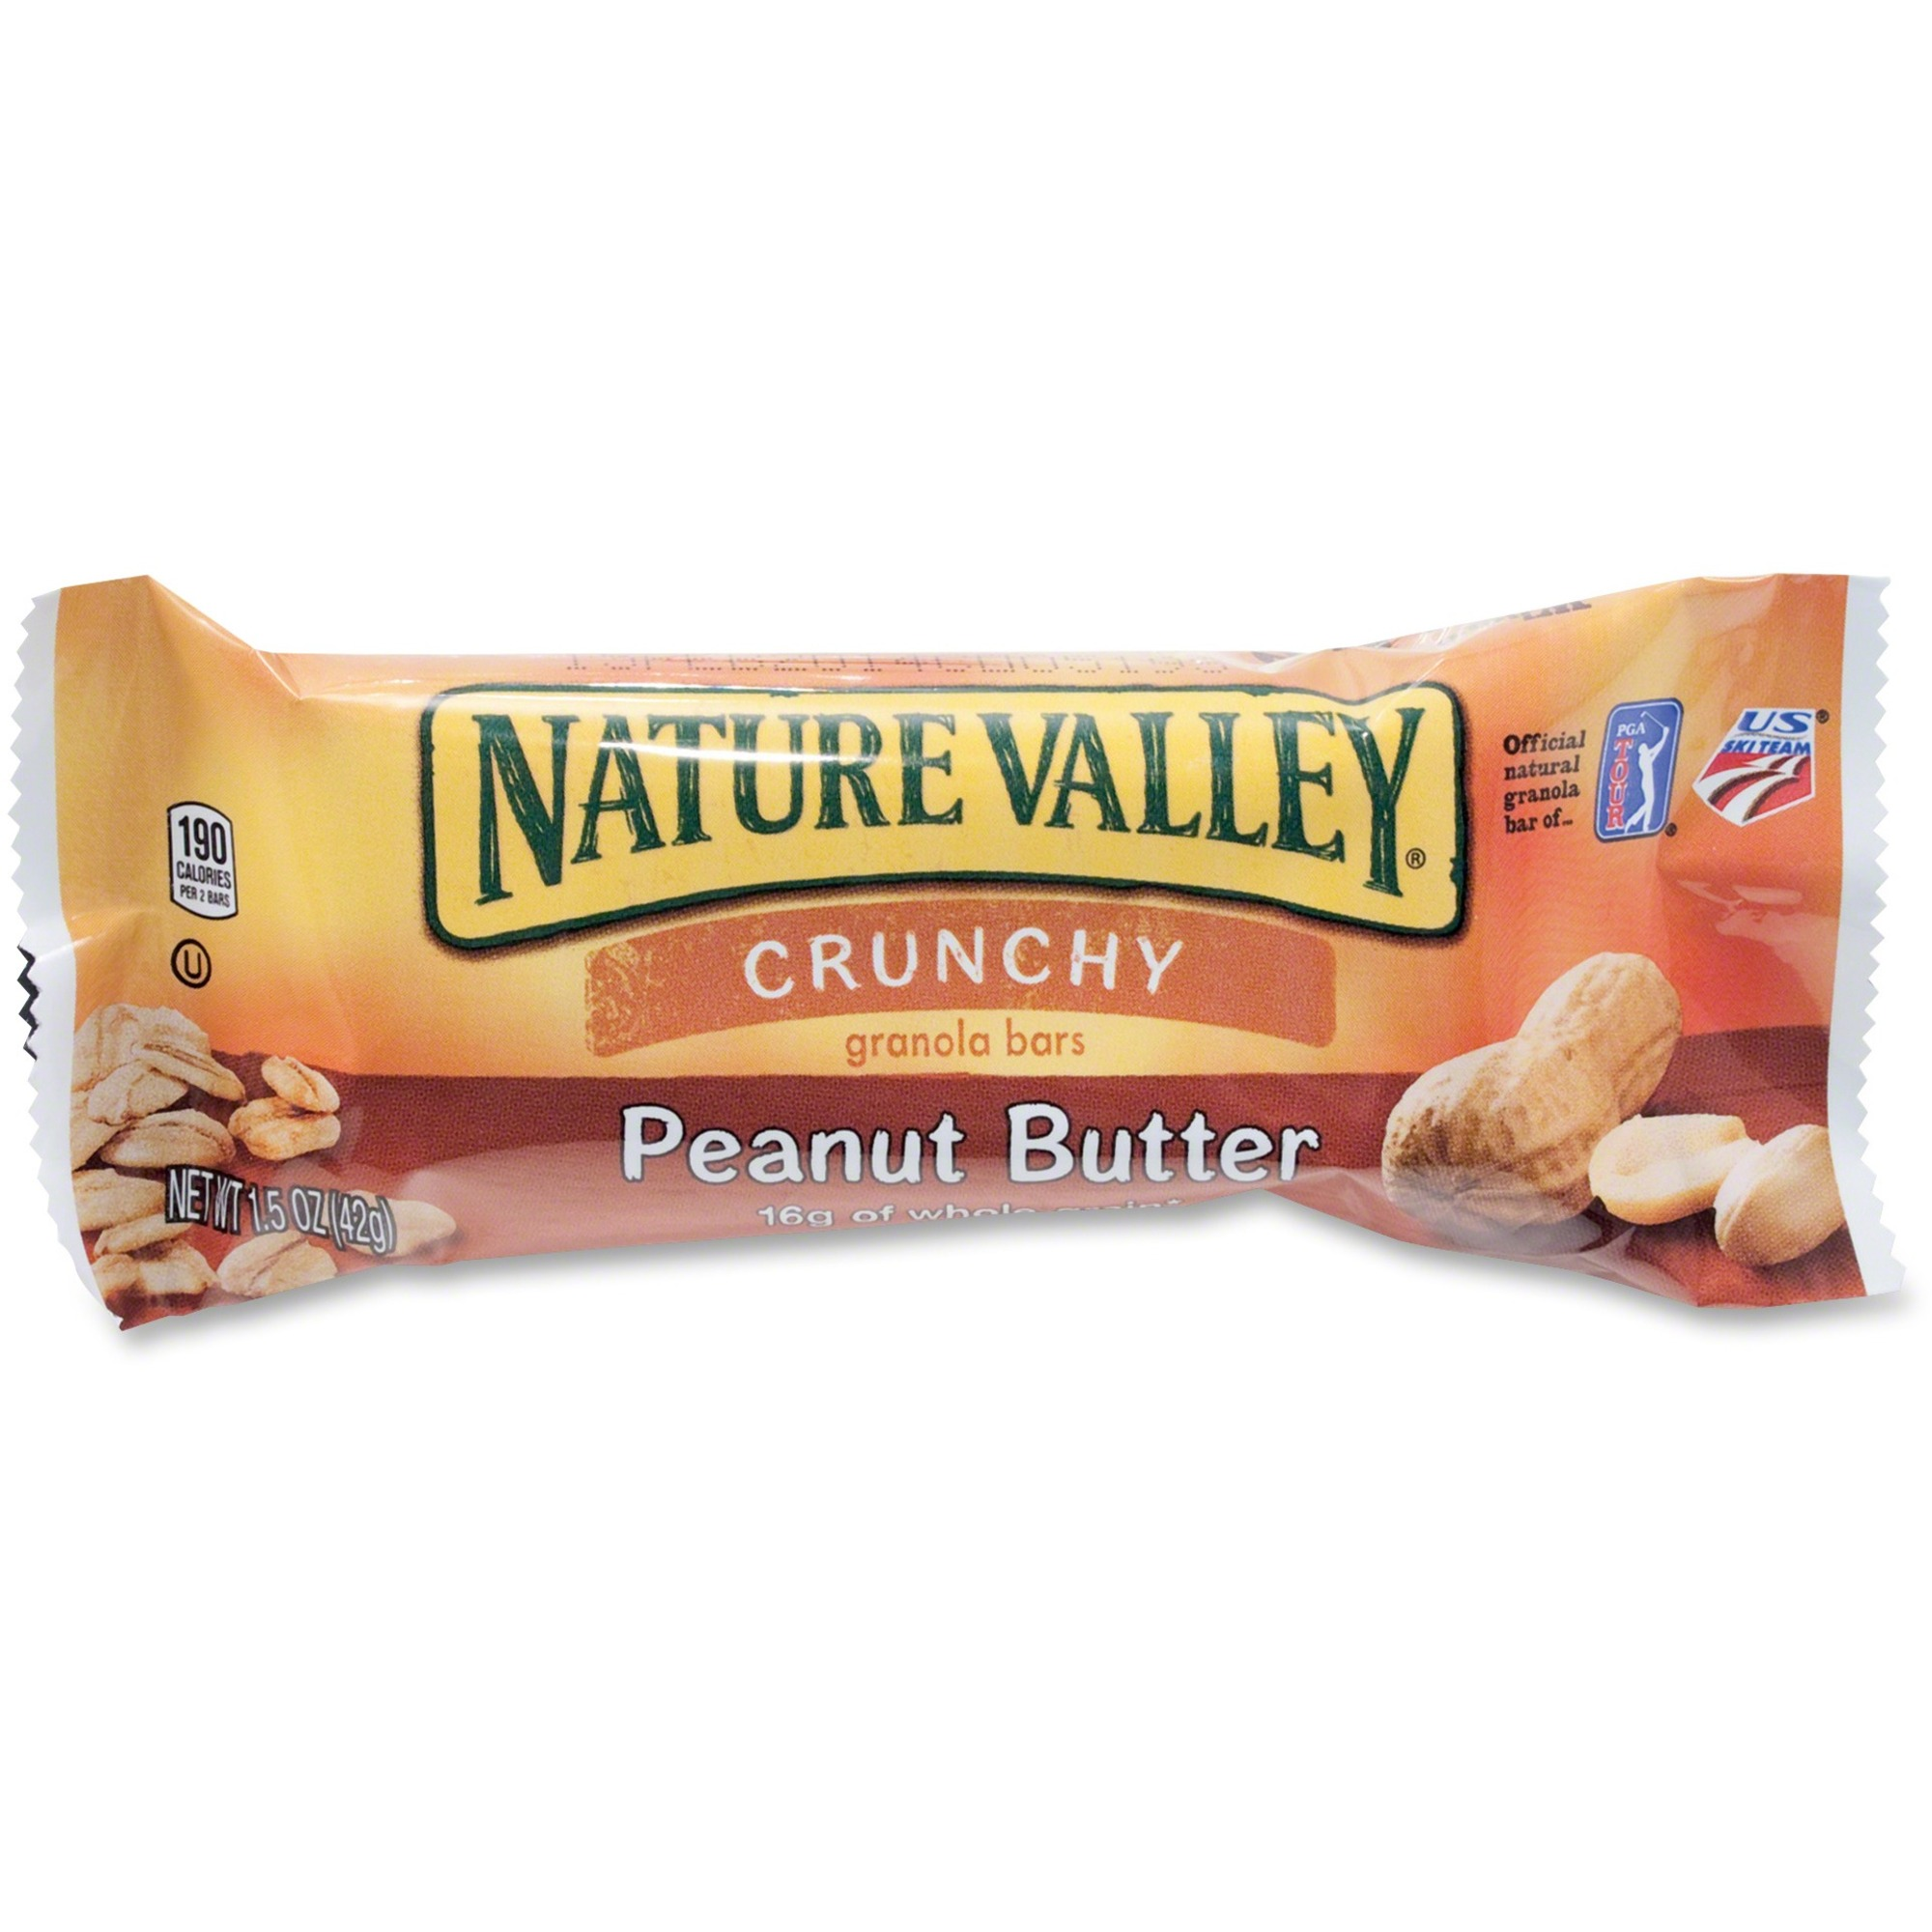 NATURE VALLEY Nature Valley Peanut Butter Granola Bars - Peanut Butter,  Crunch - 1 Serving Pouch - 42 5 g - 18 / Box